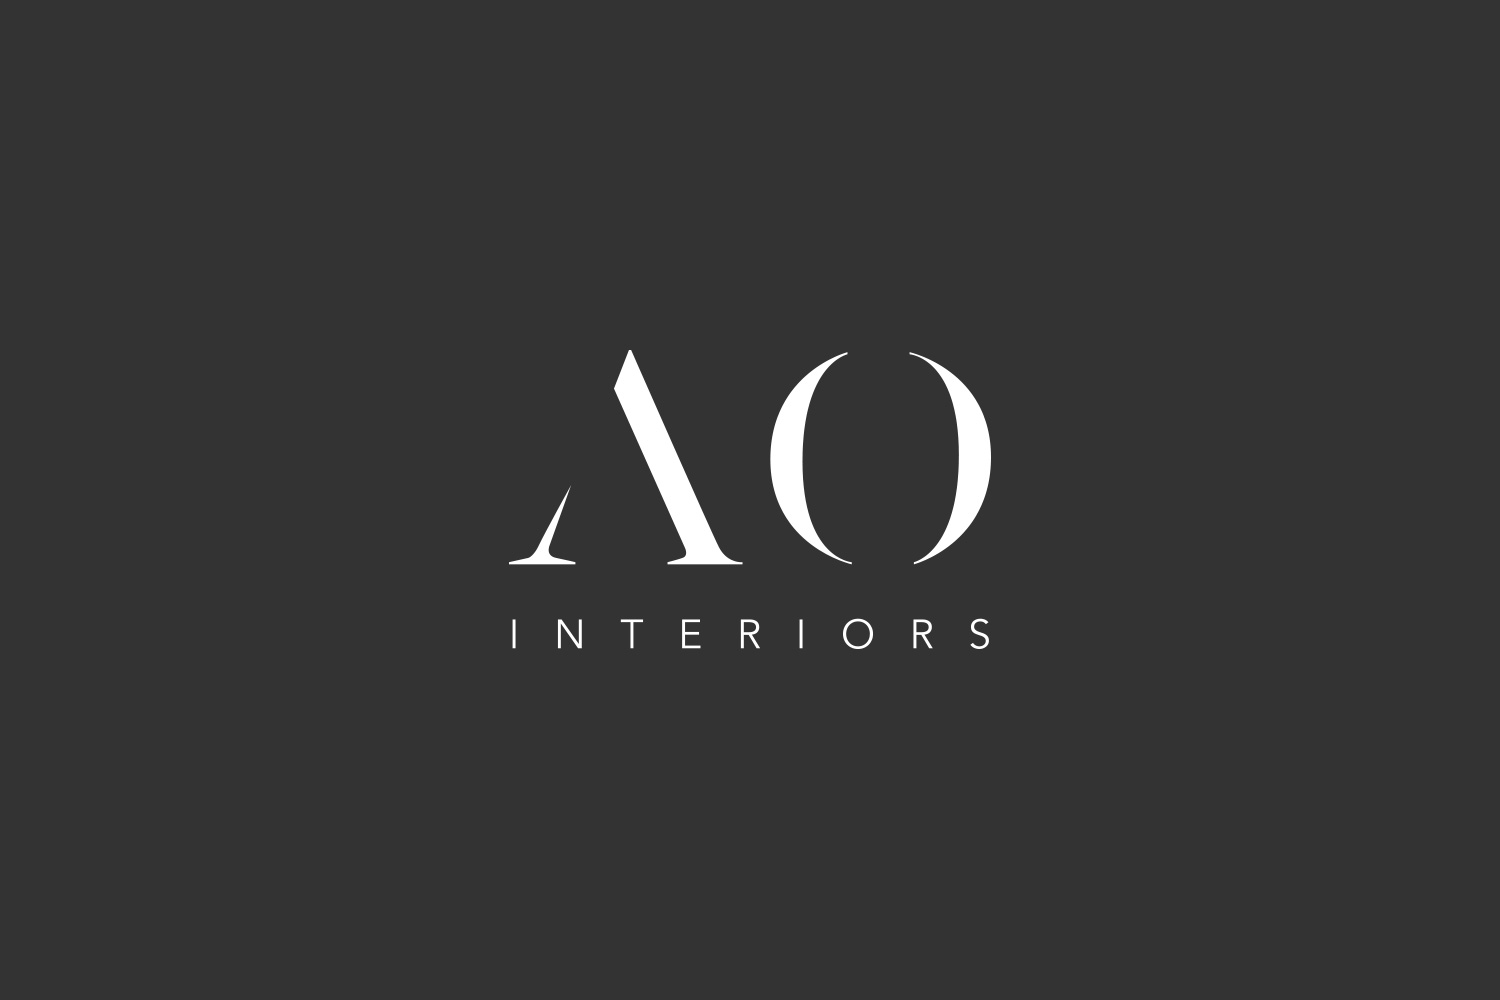 ao-interiors-corporate-identity-astein-1